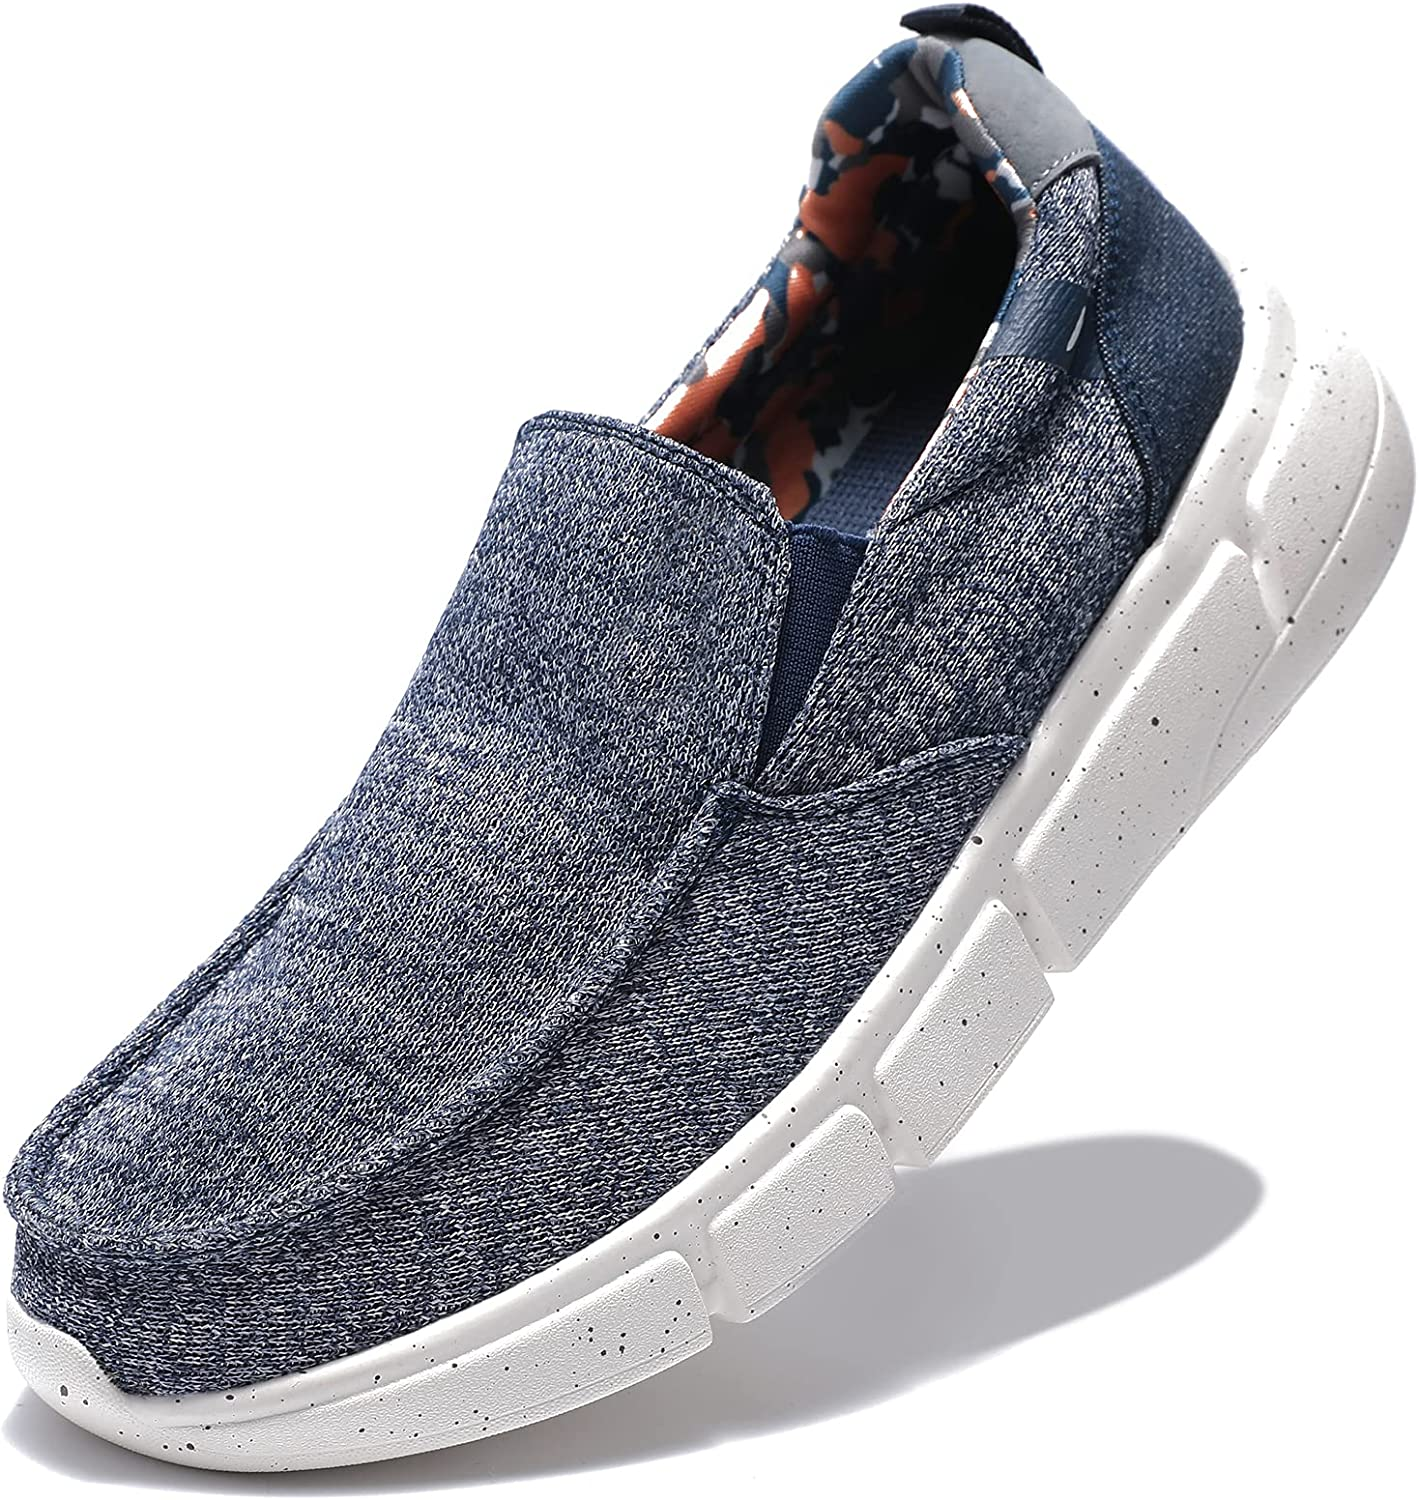 ZHR Casual Fashion Slip On Comfortable Loafers Discount Max 78% OFF is also underway Boat Lightweight